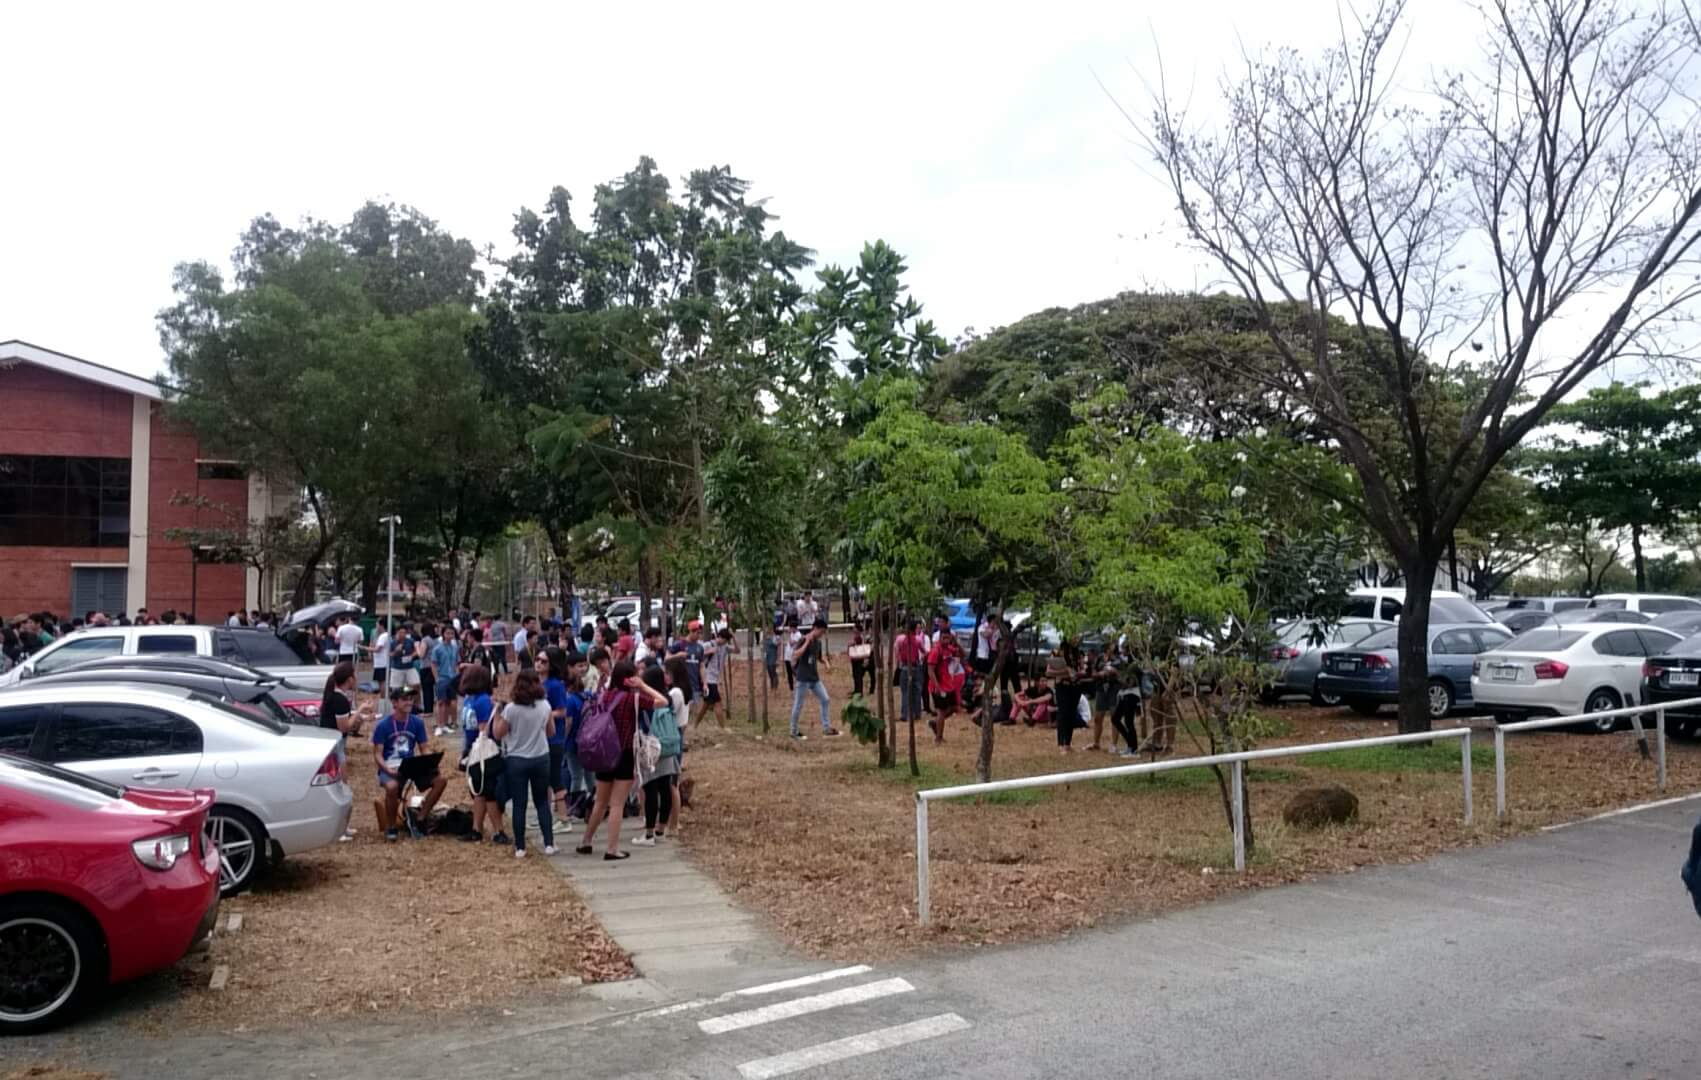 EMERGENCY. Students, faculty, and staff assembling outdoors during an evacuation at the Ateneo de Manila University campus, March 28, 2016. Photo courtesy of Jose Adrian Dalangin